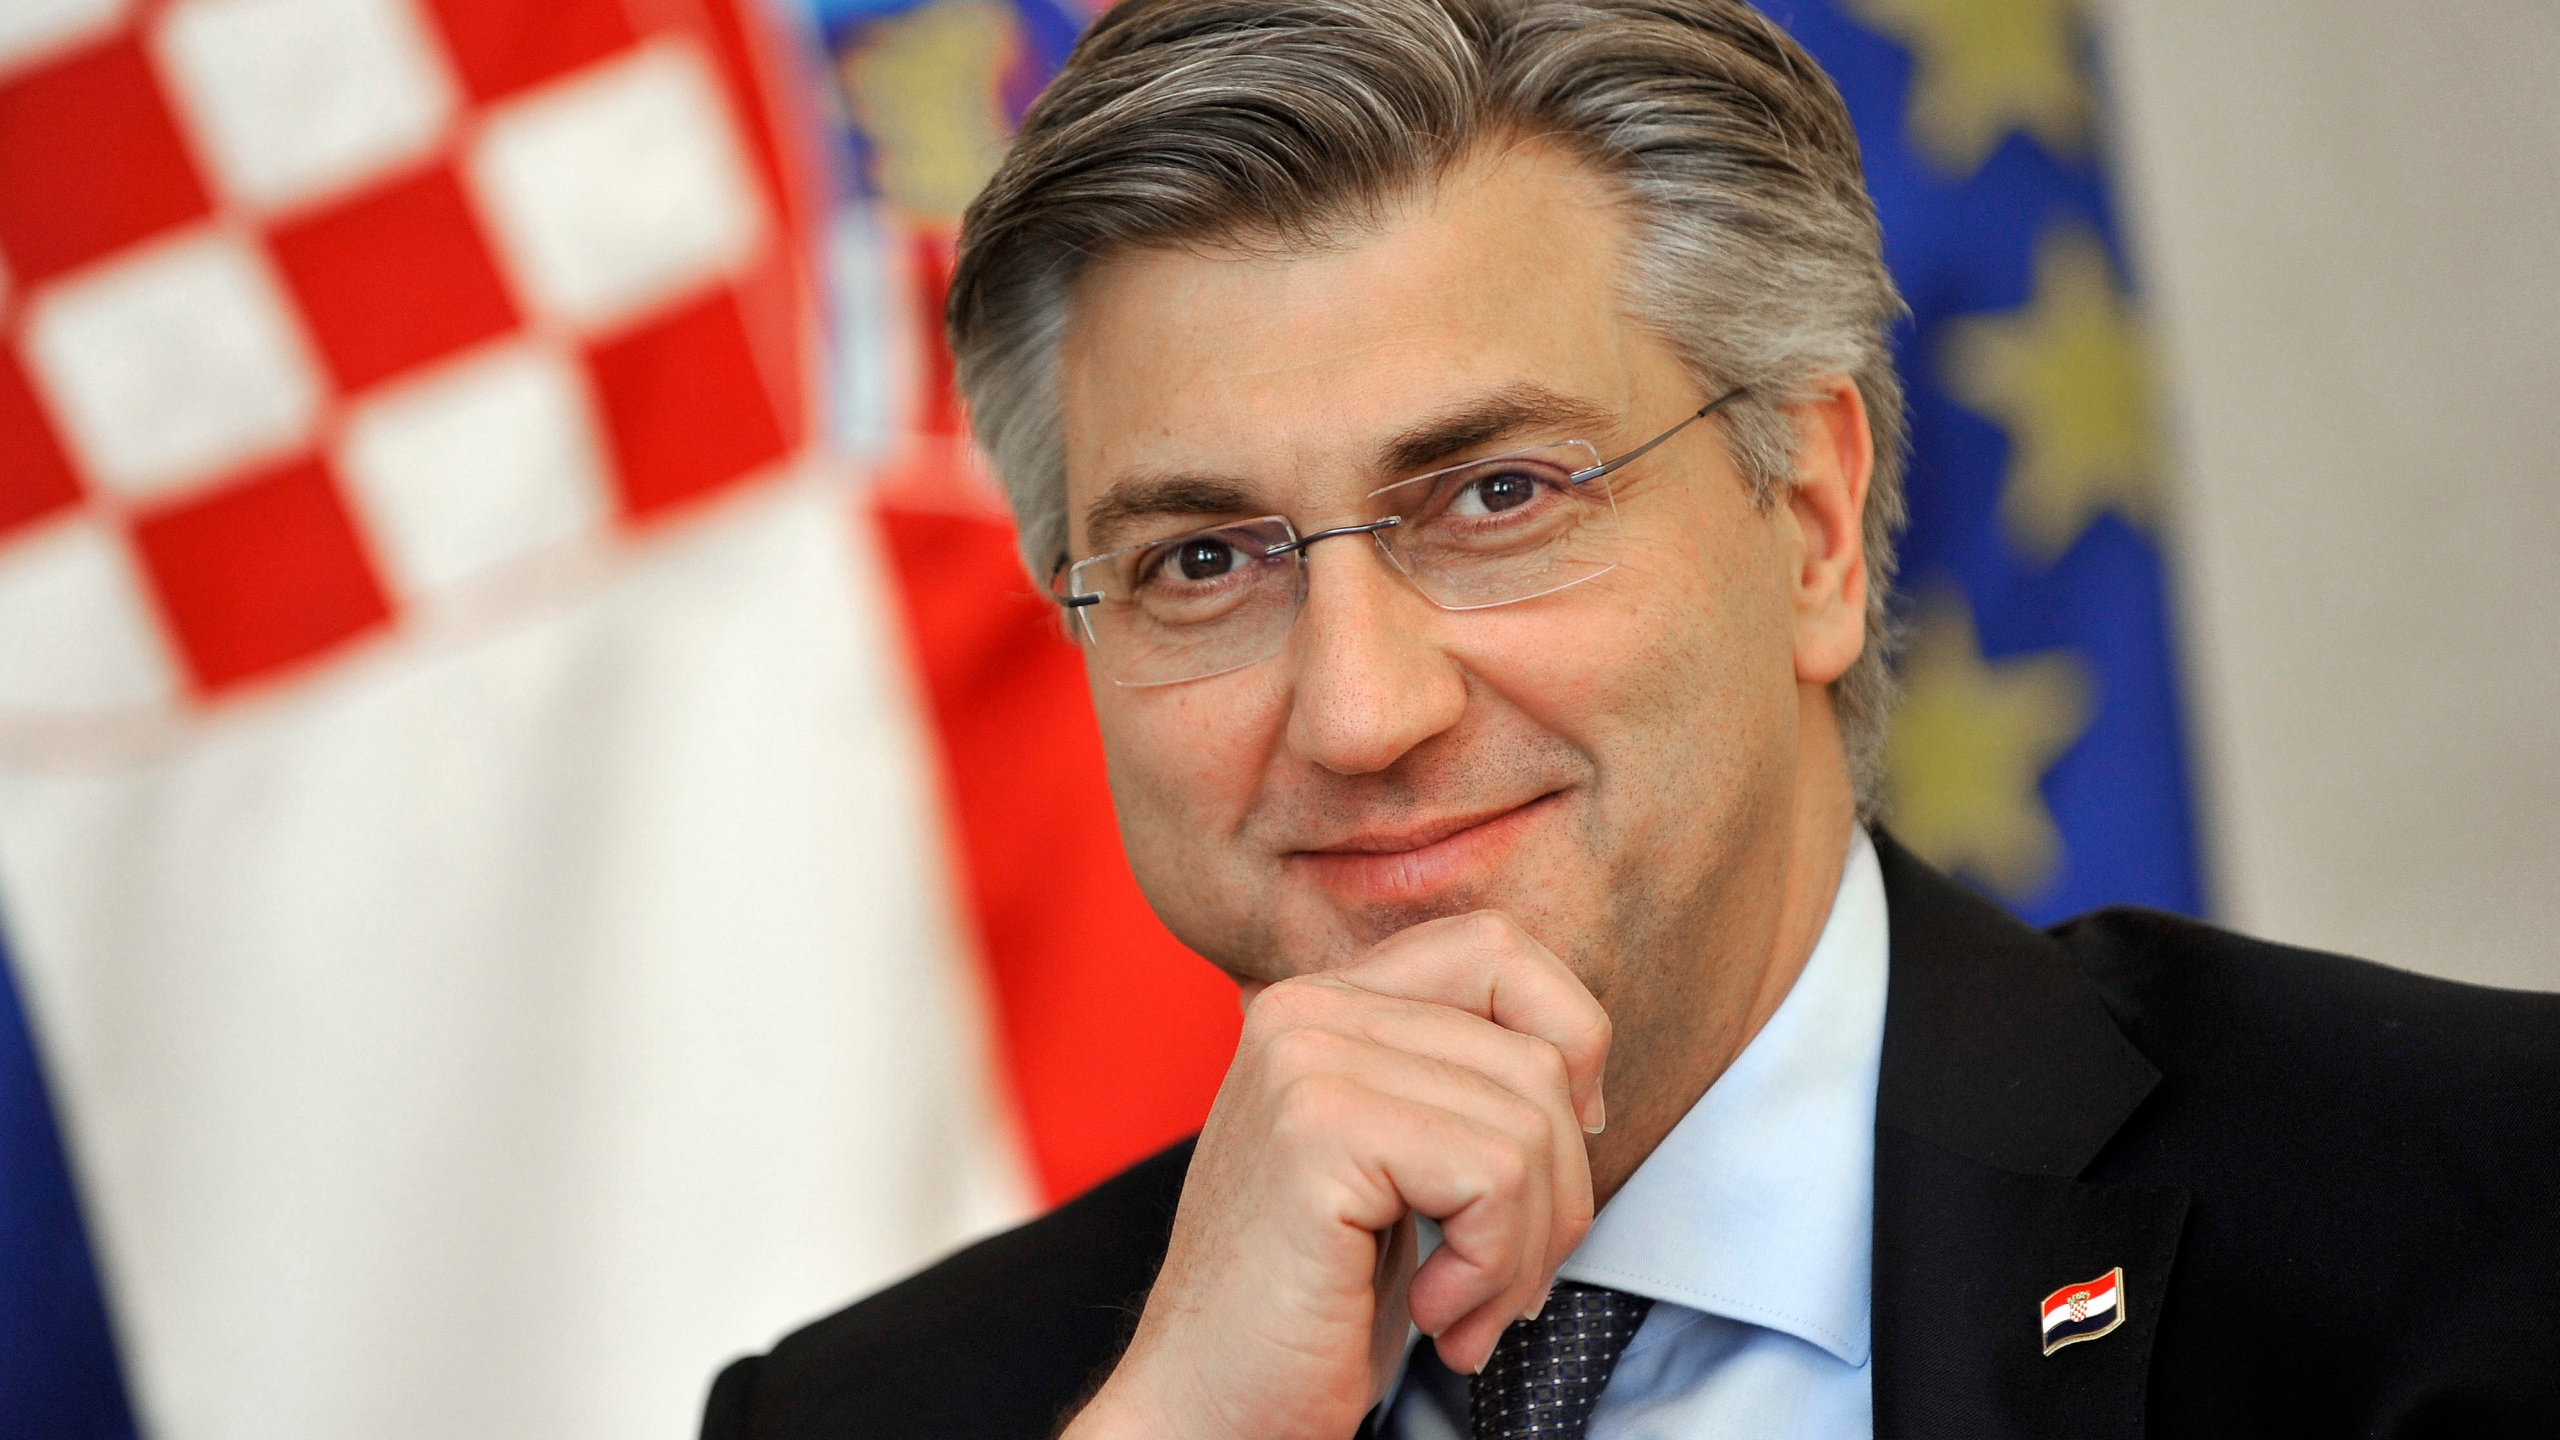 Andrej Plenkovic